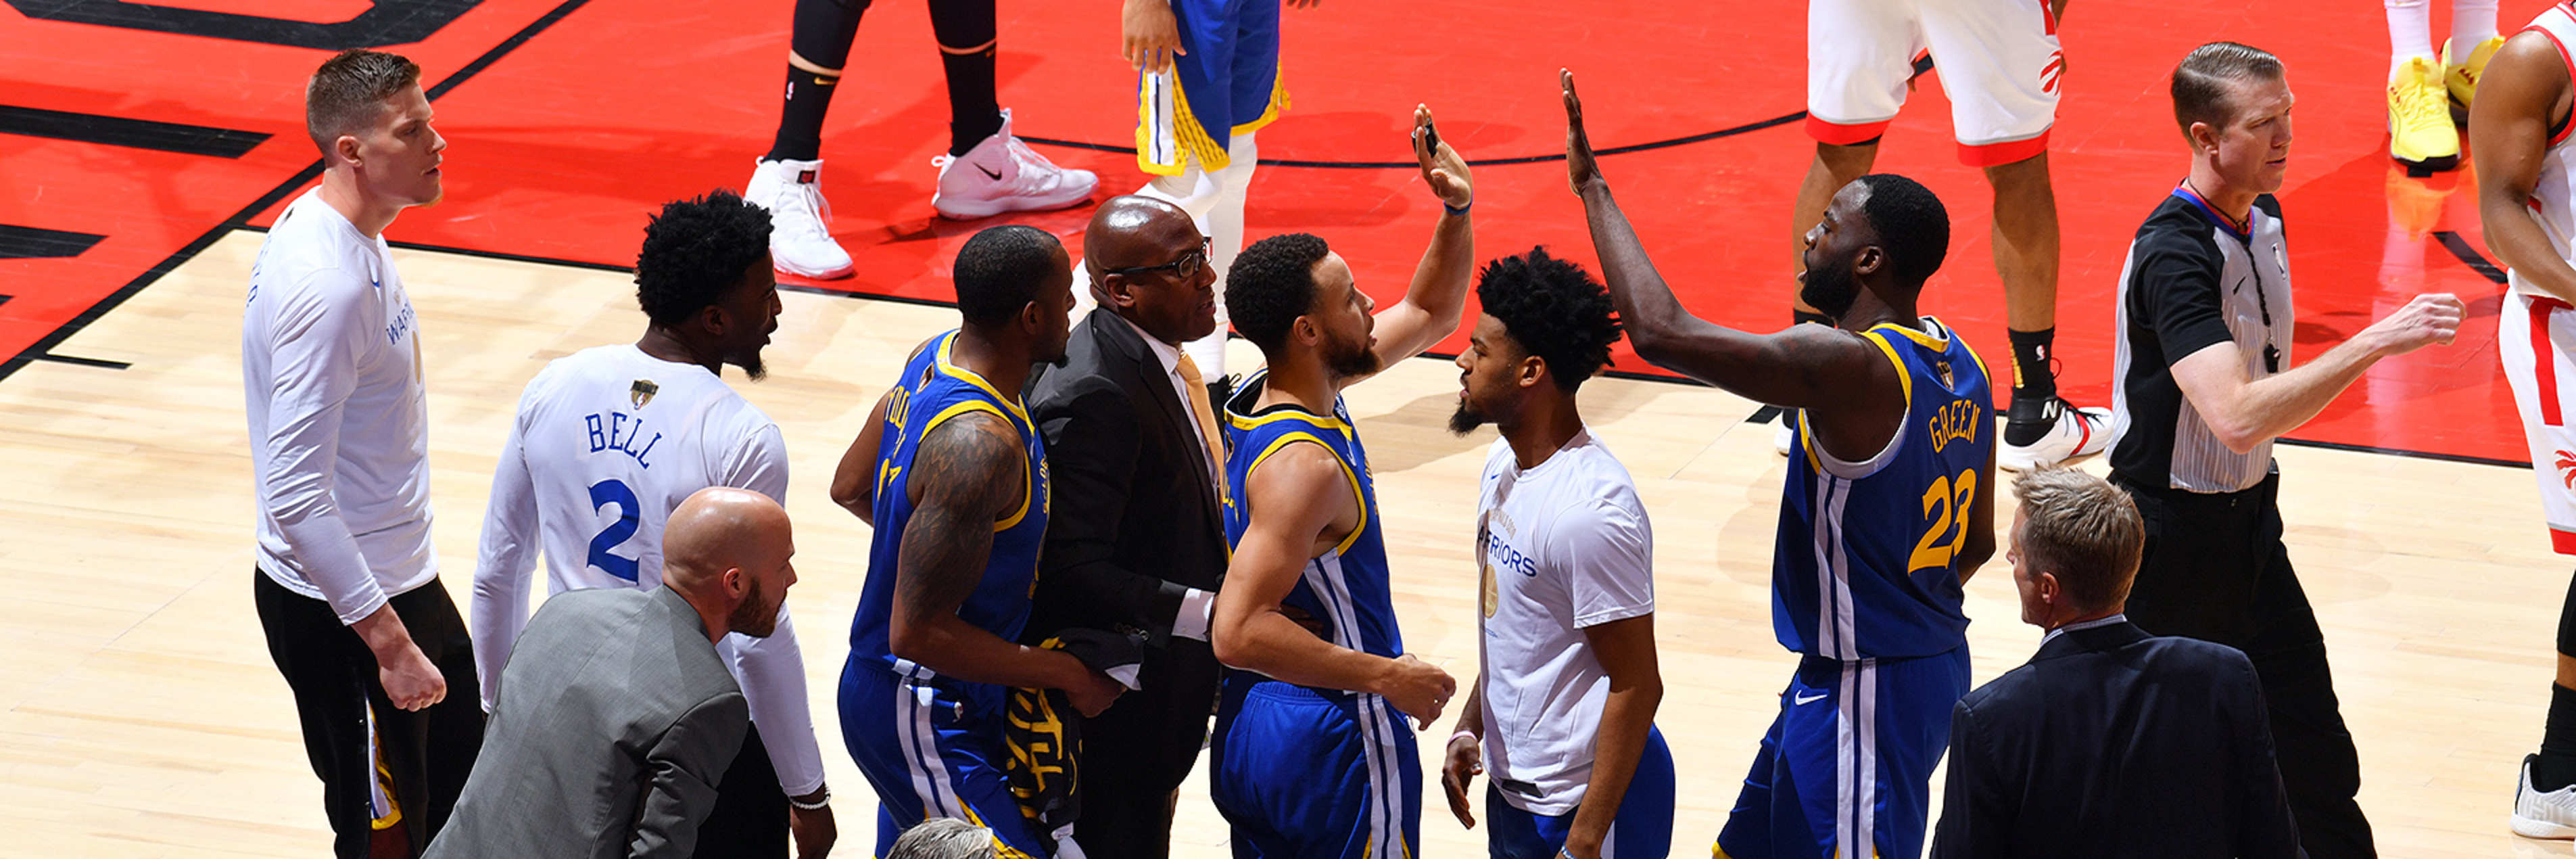 Game 5 Reactions: The Highs and Lows of a 106-105 Victory in Toronto